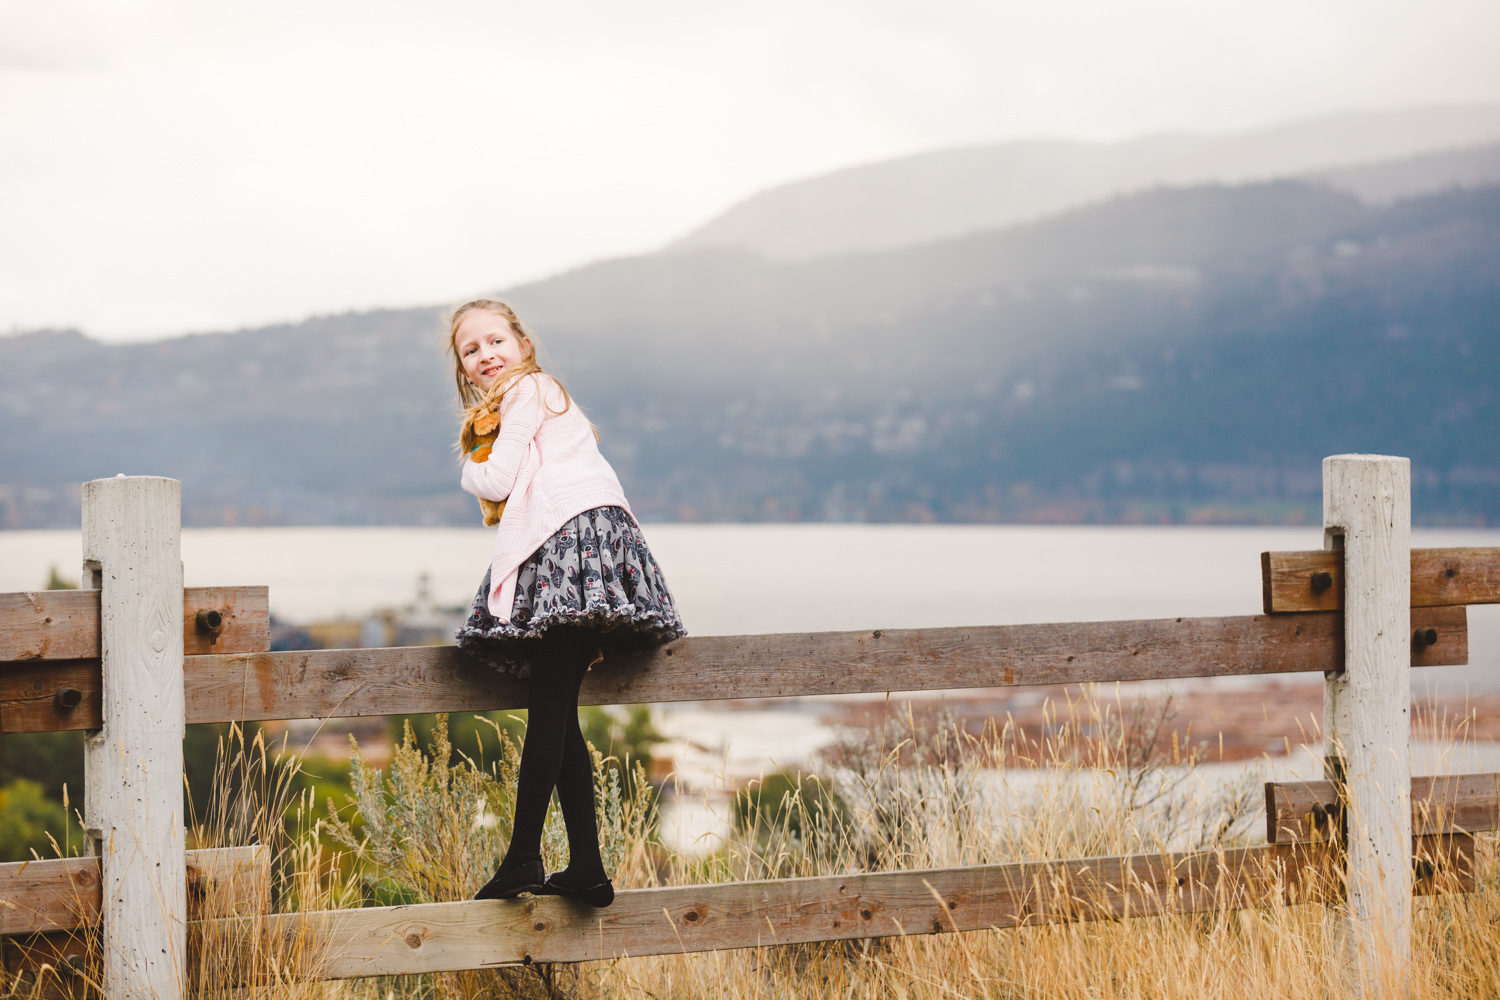 knox-mountain-family-photos-knox-mountain-photographer-knoz mountain-kelowna-bc-knox-moutain-mother-daughter-photography-by-julie-dorge (7 of 27).jpg